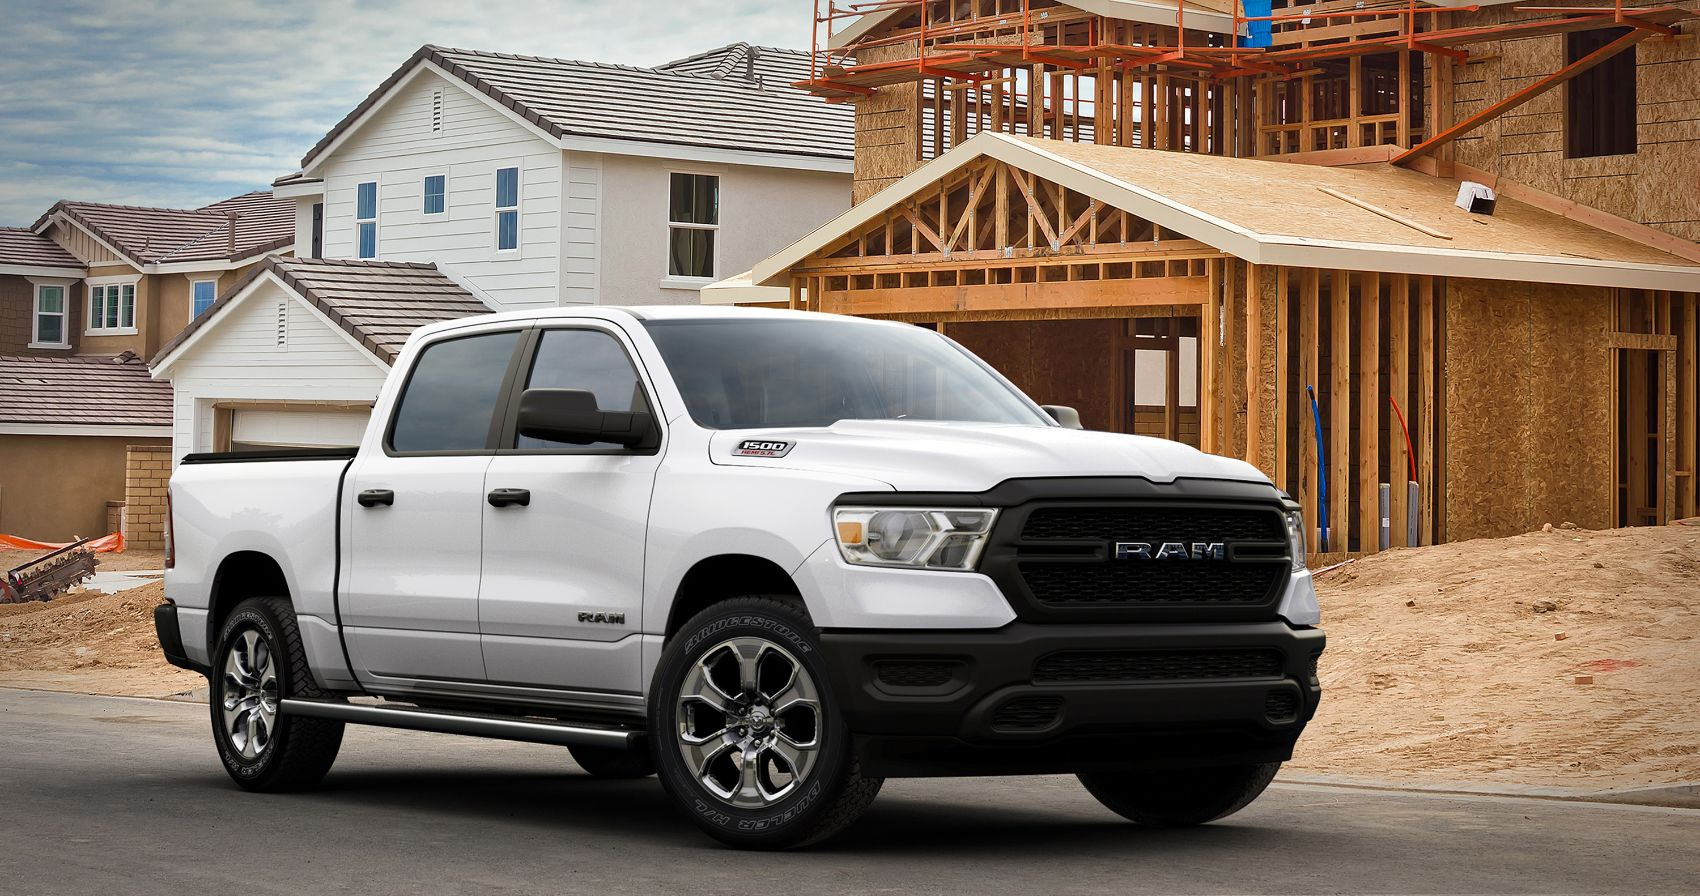 Ram 1500 Tradesman HFE EcoDiesel: At 33 mpg Highway, It's a Certified Fuel-Sipper